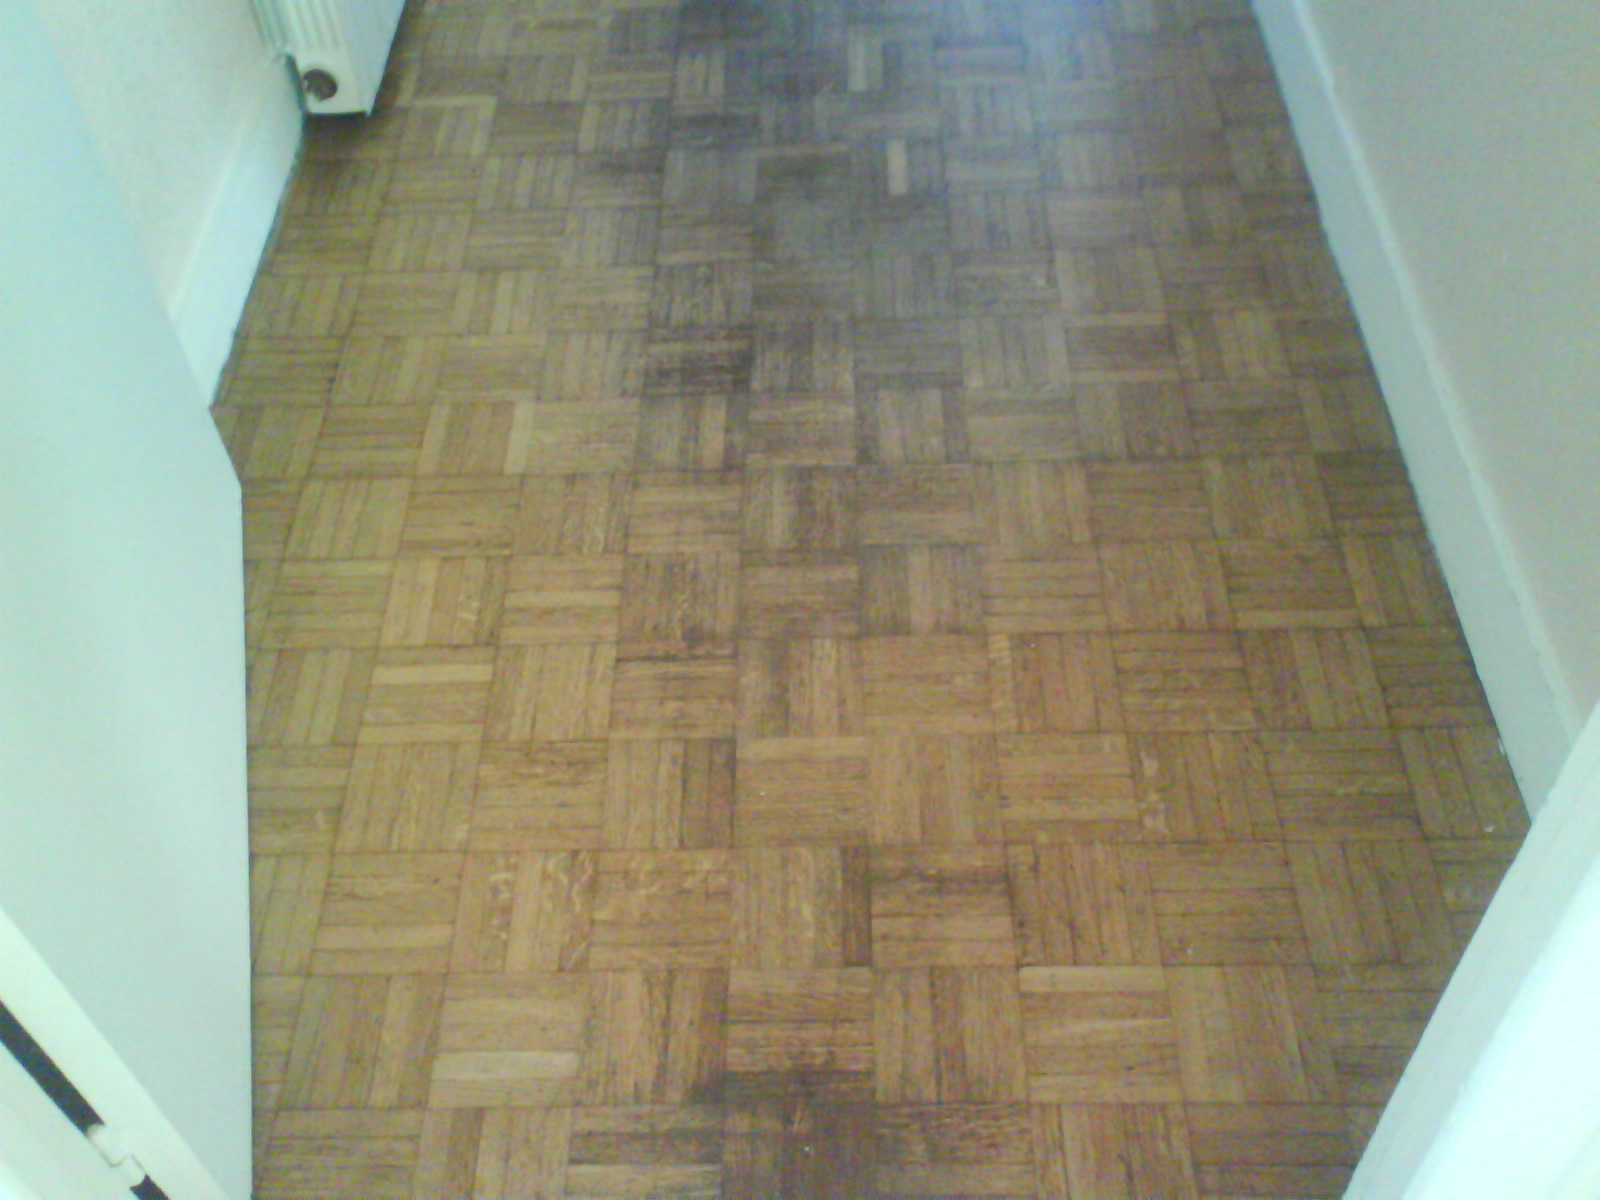 nettoyer parquet ancien nettoyage duun parquet tach de vin with nettoyer parquet ancien sjour. Black Bedroom Furniture Sets. Home Design Ideas